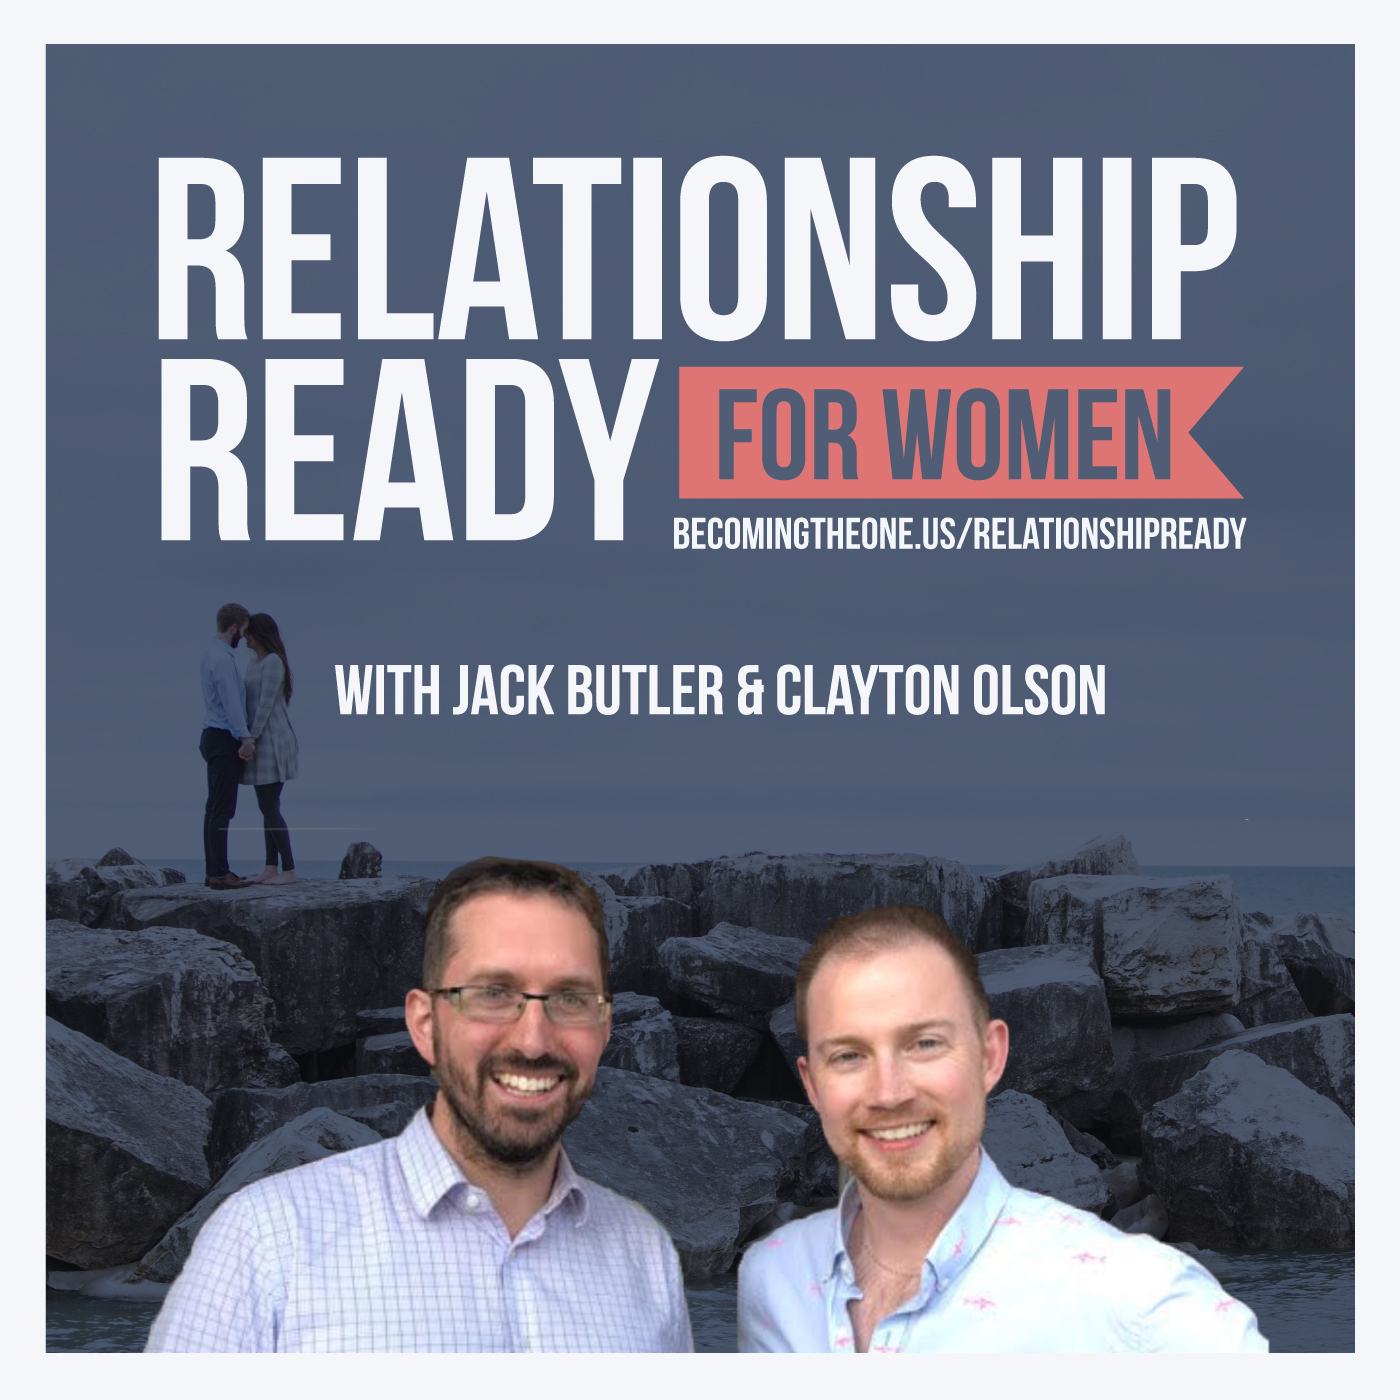 Relationship Ready - THIS Stops 99.9% of Men From Falling In Love